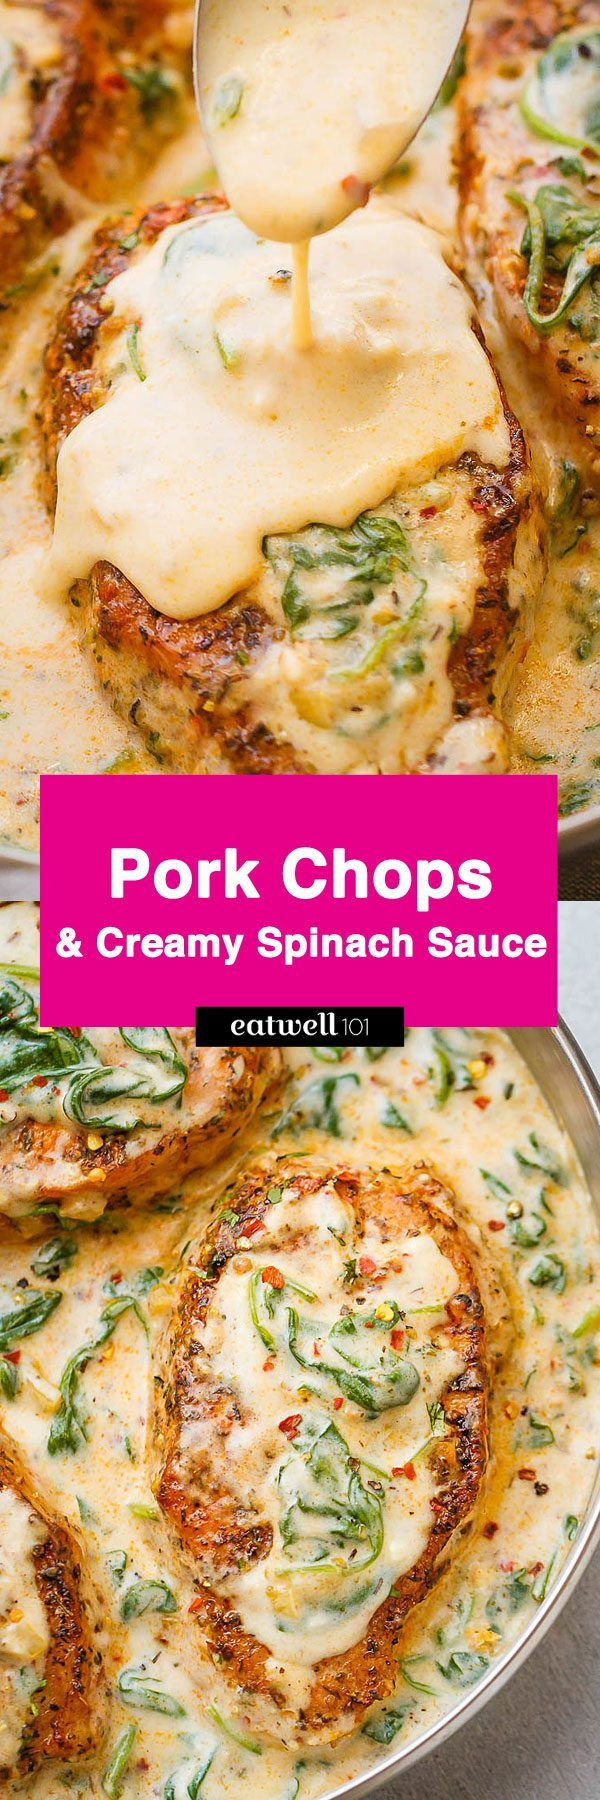 Boneless Pork Chops with Garlic Butter Spinach Sauce — #eatwell101 #recipe Packed with flavor, a perfect meal for all of your family and friends to enjoy! Boneless #Pork Chops with #Garlic #Butter #Spinach #Sauce #PorkChops #dinner - #recipe by #eatwell101